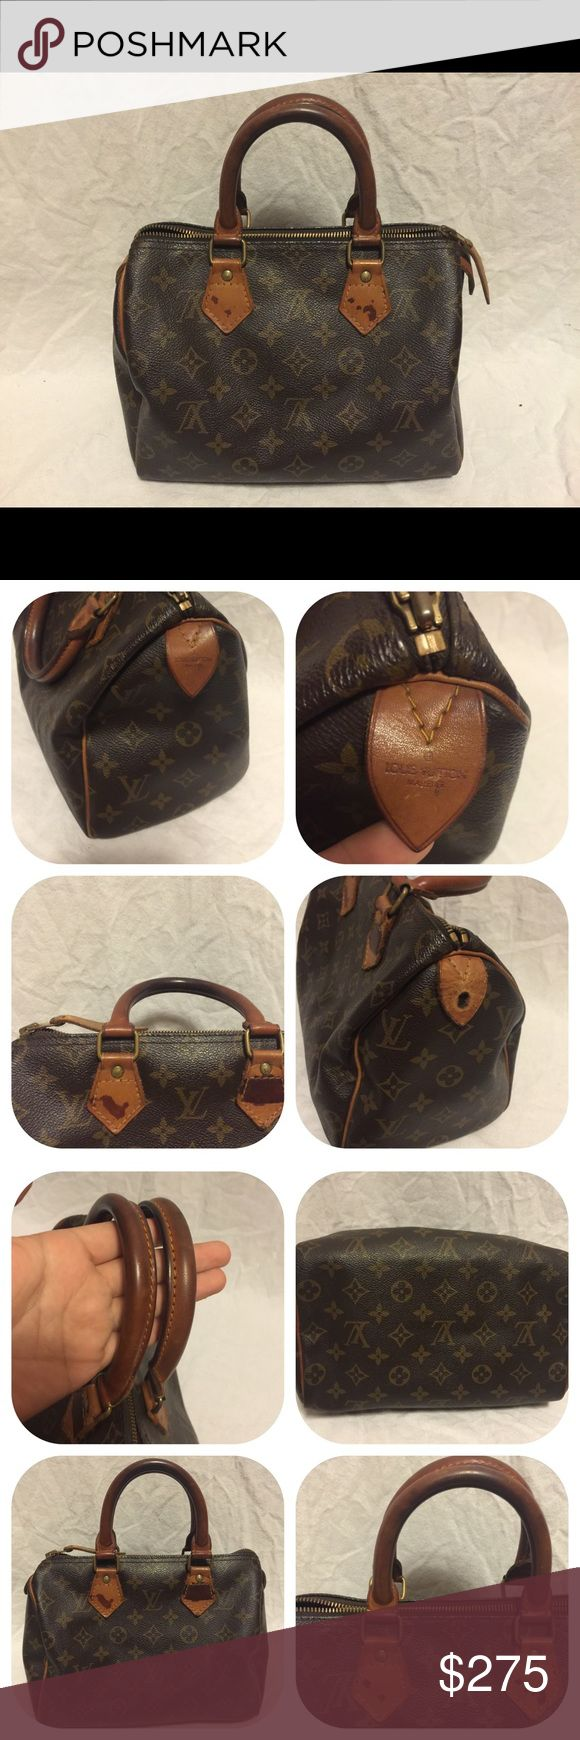 Authentic louis vuitton speedy 25 it is in used good condition  seri no: 892FC  Outside: monogram canvas is great condition   Tanned leather parts has some patinas, tiny dirt.  handle  has some scratches, black stain.  inside has tiny dirt   no dust bag, no key.  please see all pictures if you have any question please let me know %100 authentic and fast shipping! Louis Vuitton Bags Satchels